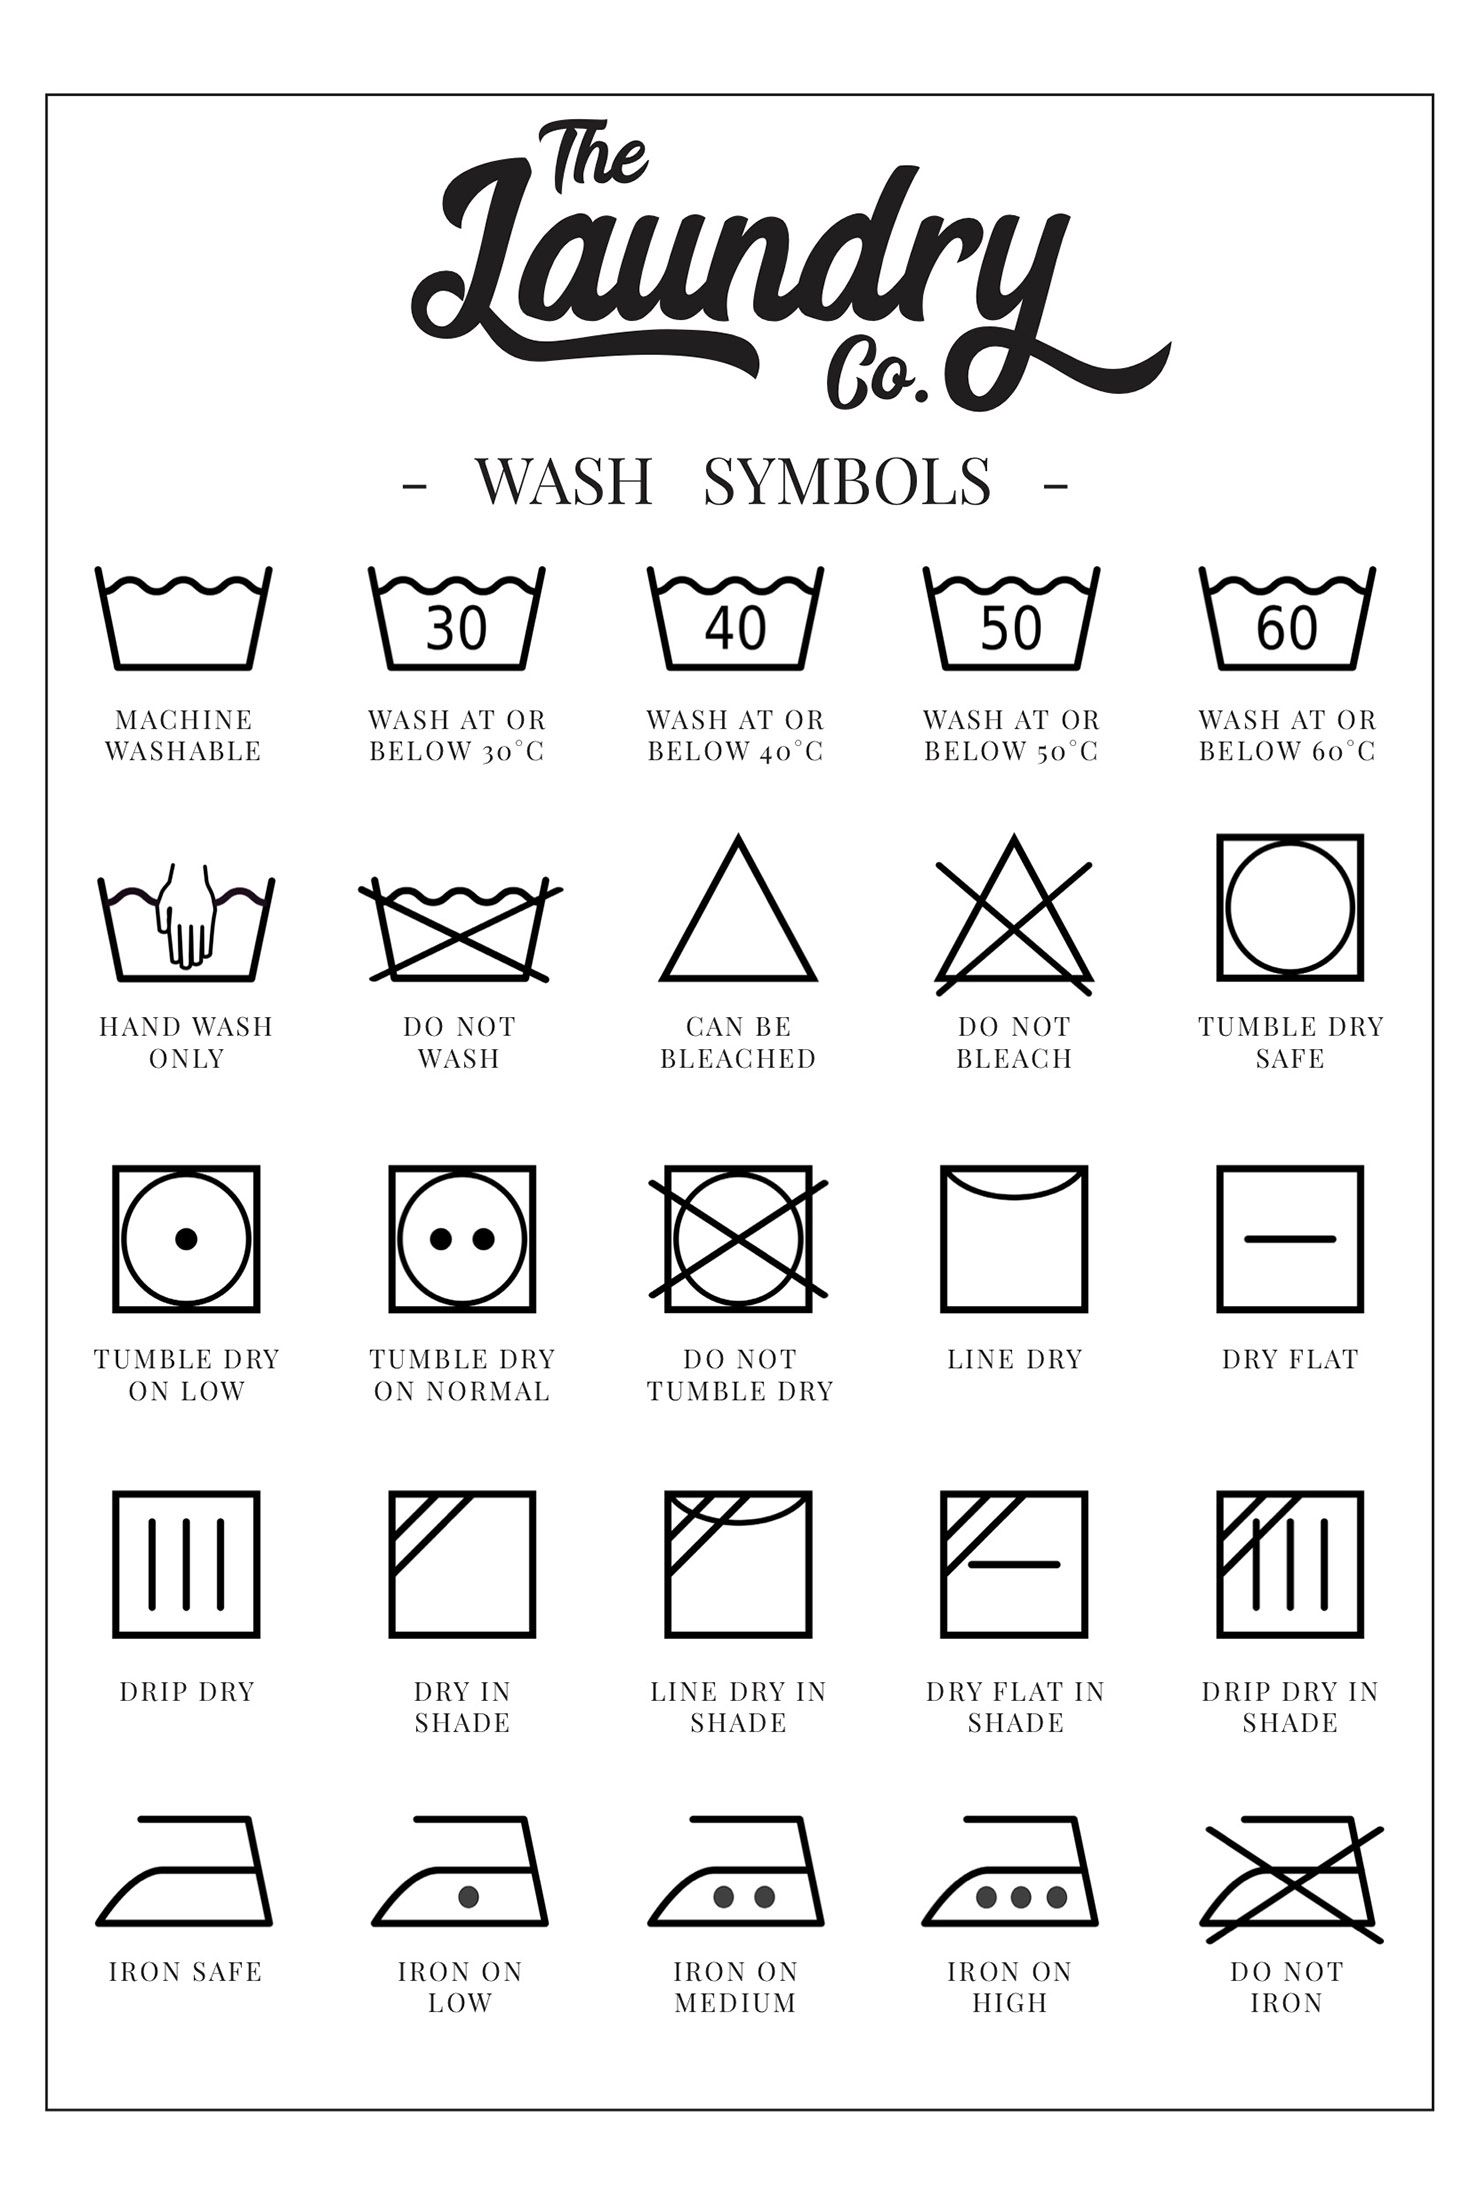 Nifty image for laundry symbols printable